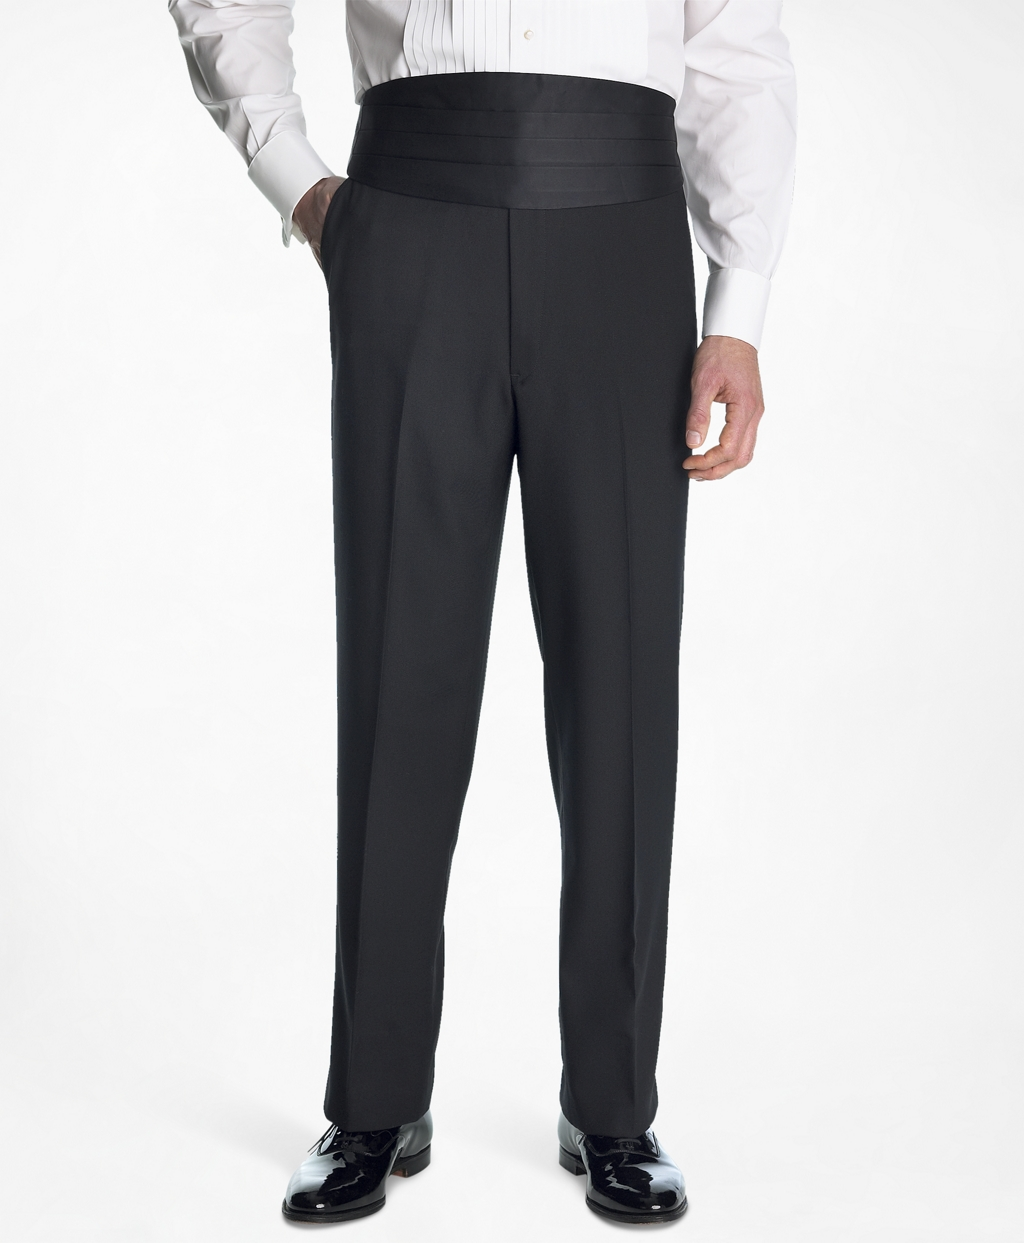 Edwardian Titanic Mens Formal Suit Guide Brooks Brothers Mens 1818 Plain-Front Tuxedo Trousers $300.00 AT vintagedancer.com